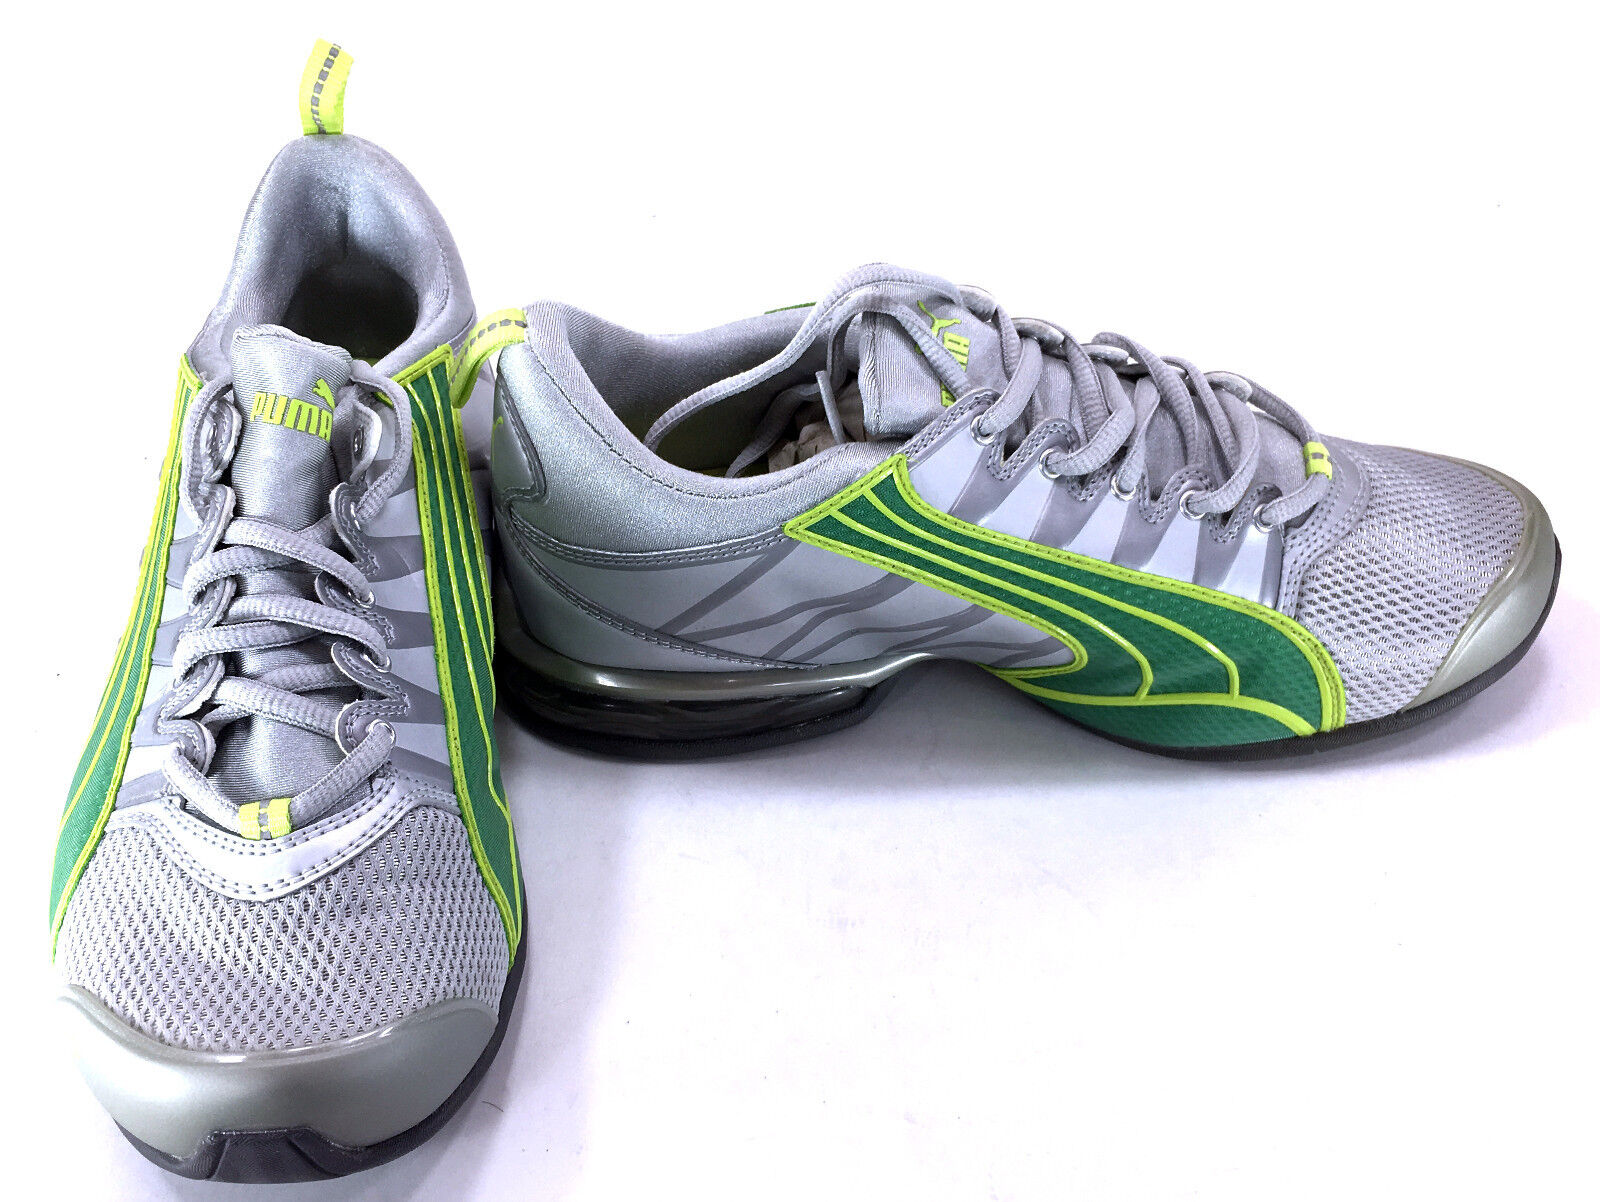 Puma Shoes Voltaic 5 Running Trainers Gray/Green Sneakers Womens 9